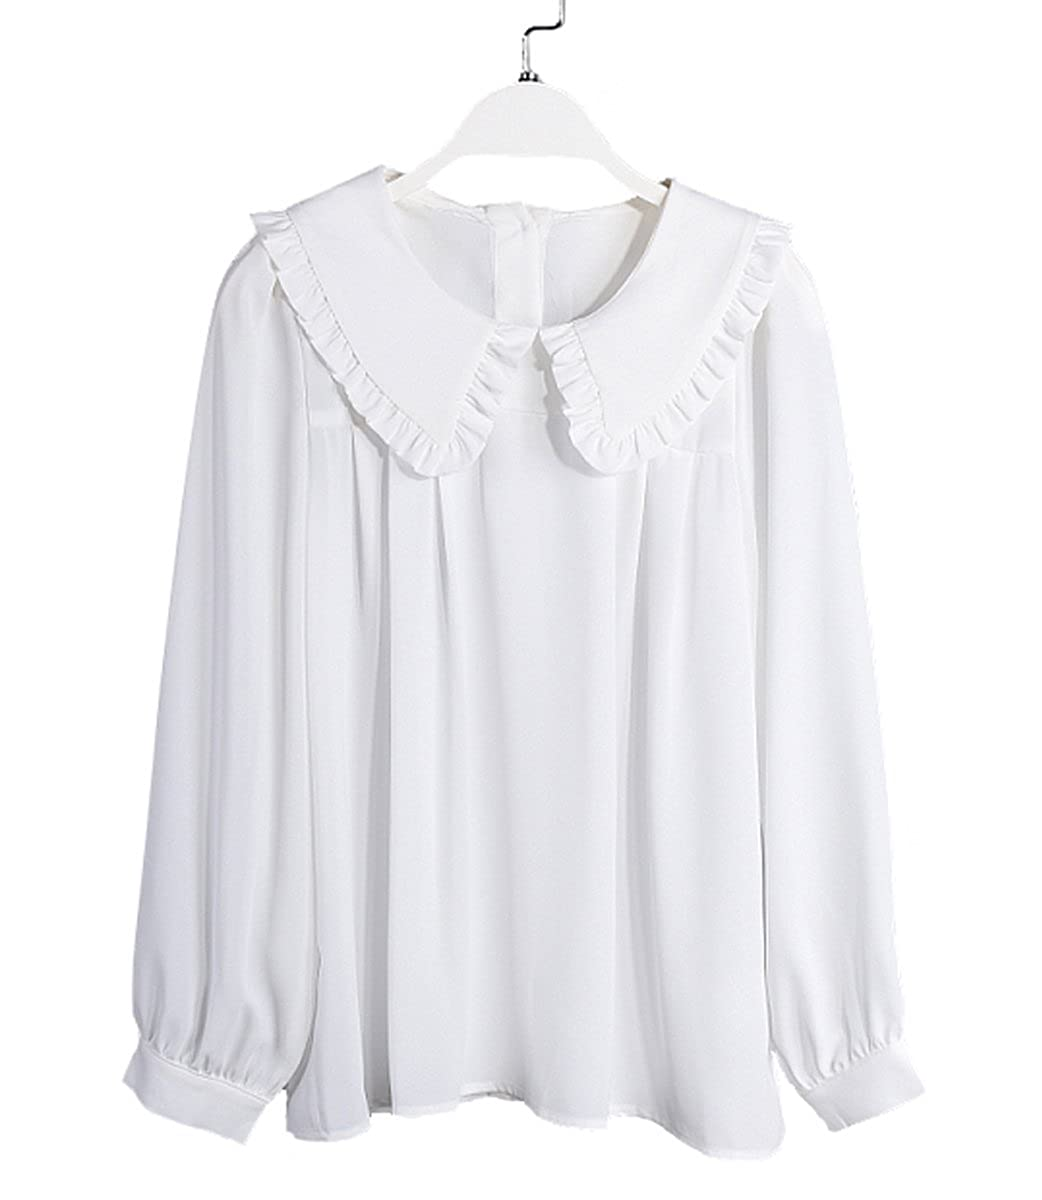 Edwardian Style Blouses Purpura Erizo Womens Flounce Collar Button Down Back Chiffon Blouse $24.99 AT vintagedancer.com